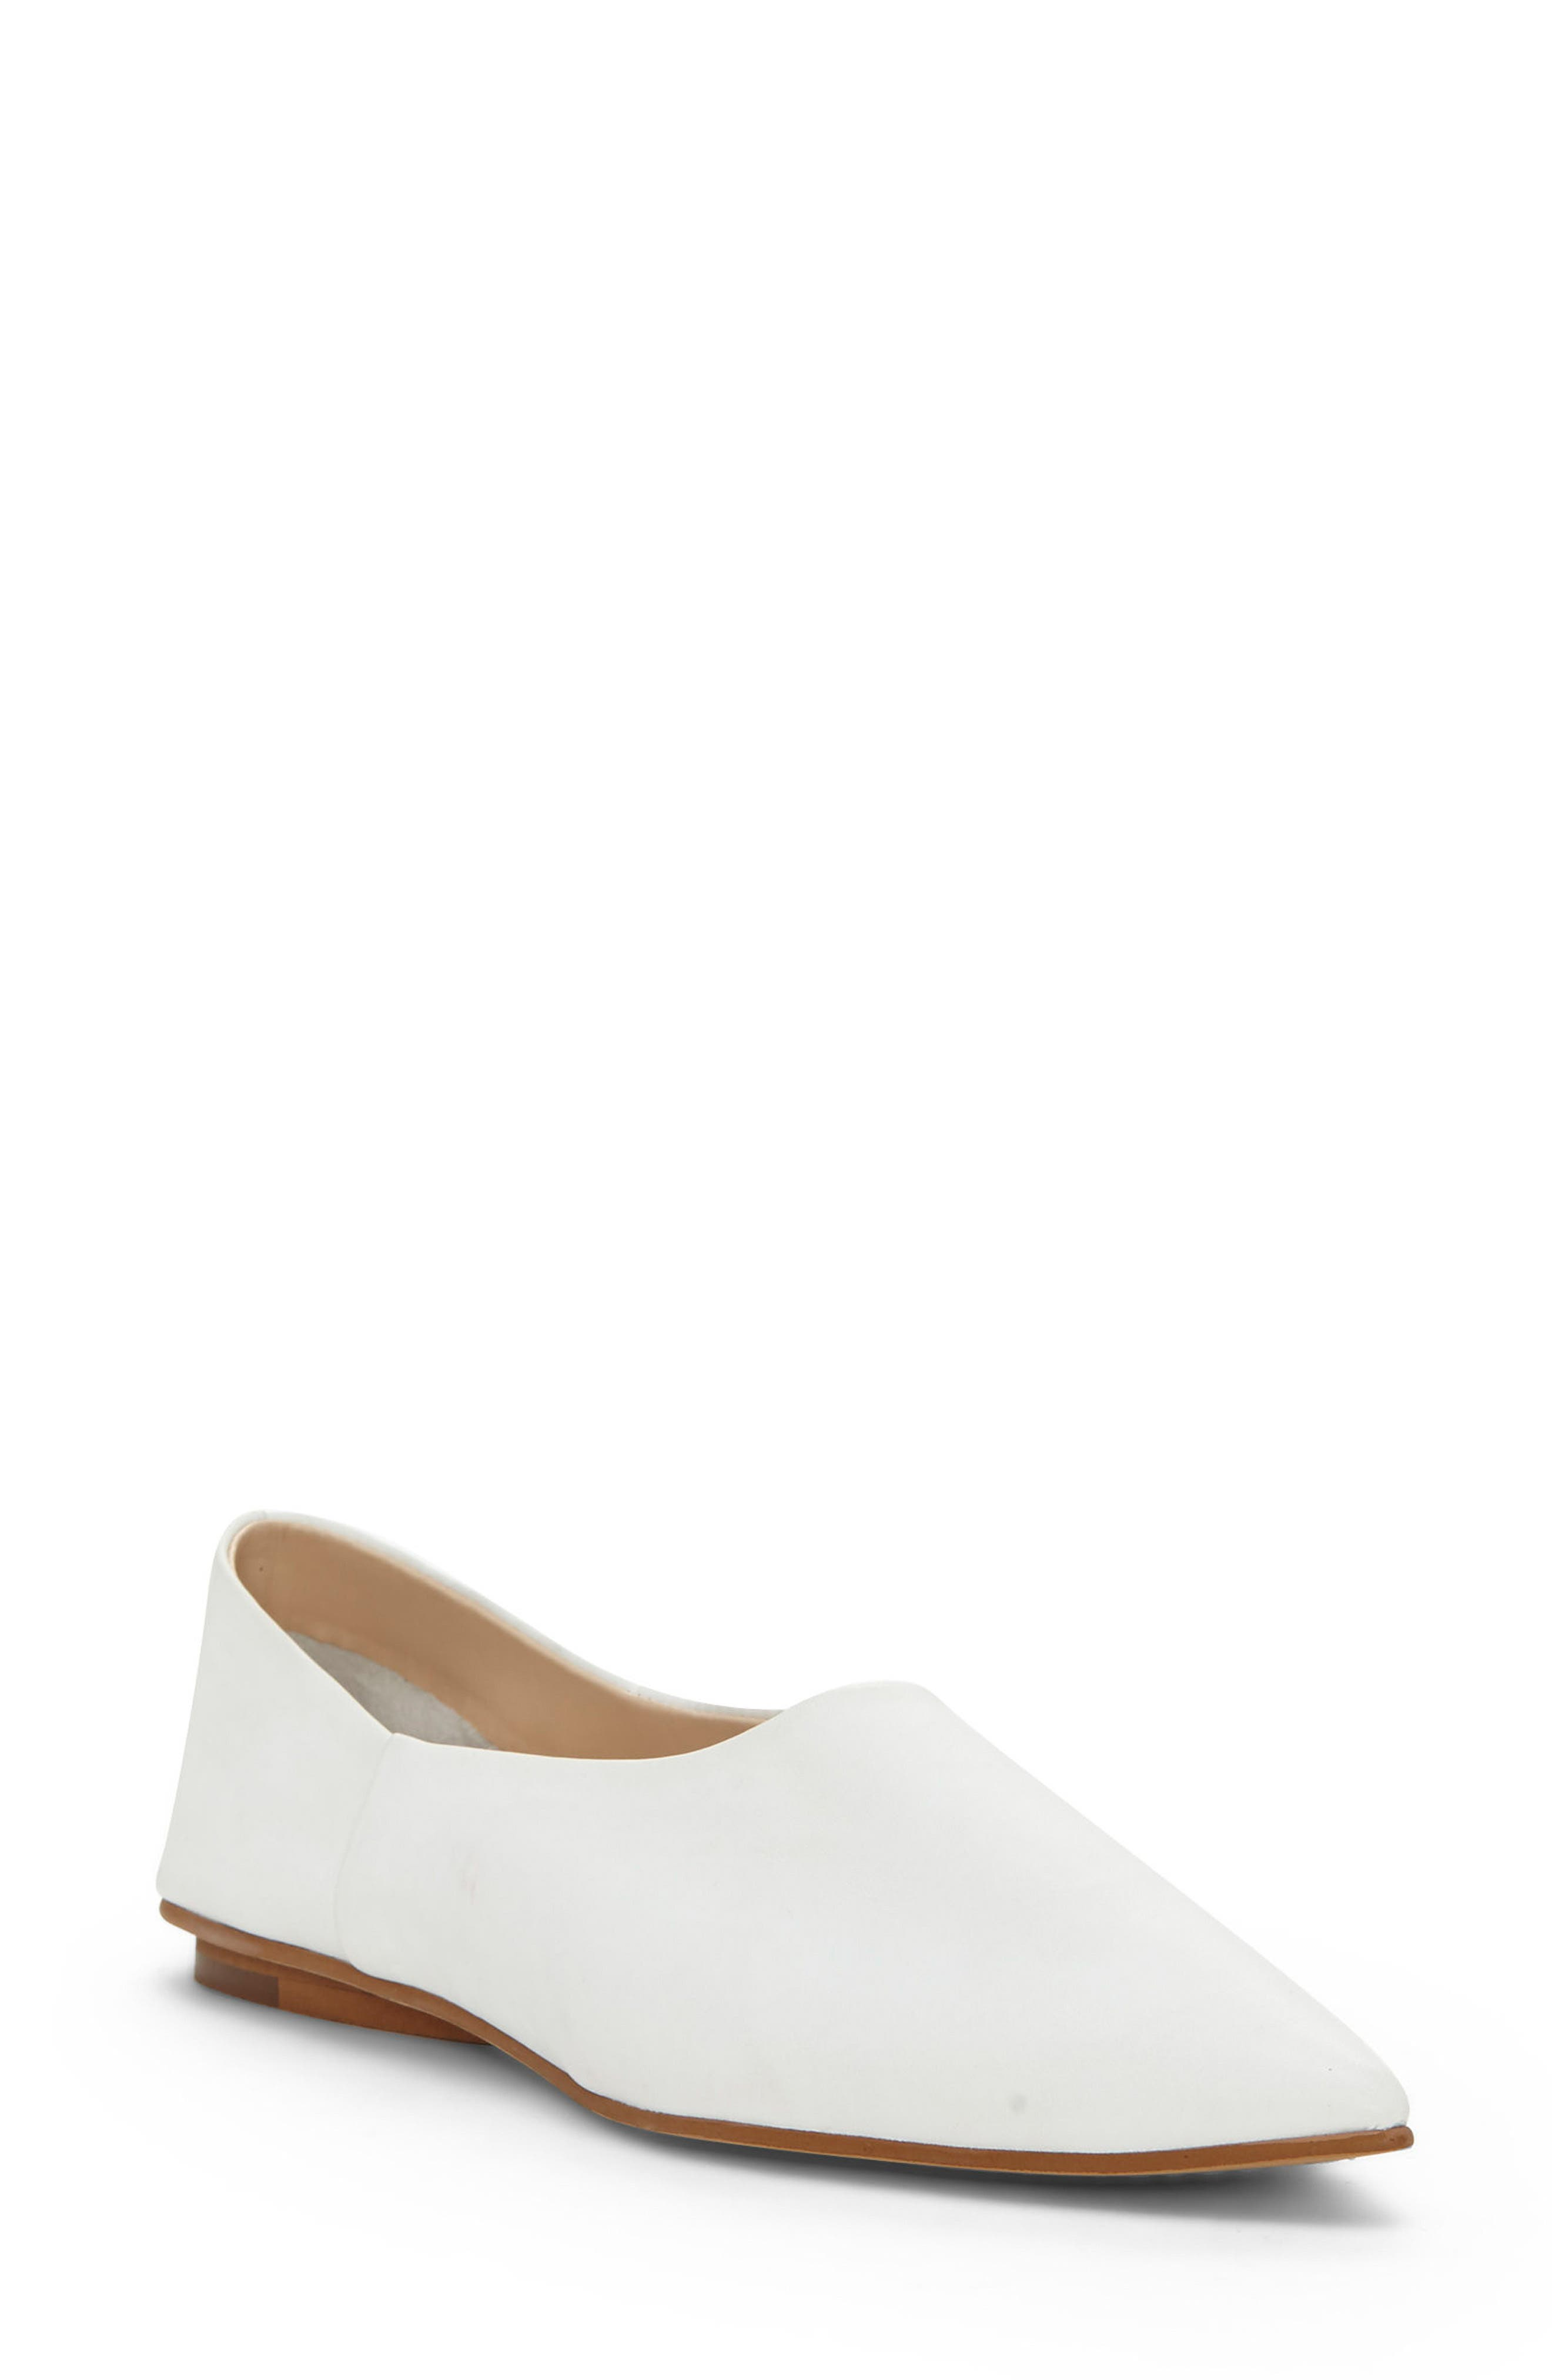 Vince Camuto Stanta Pointy Toe Flat